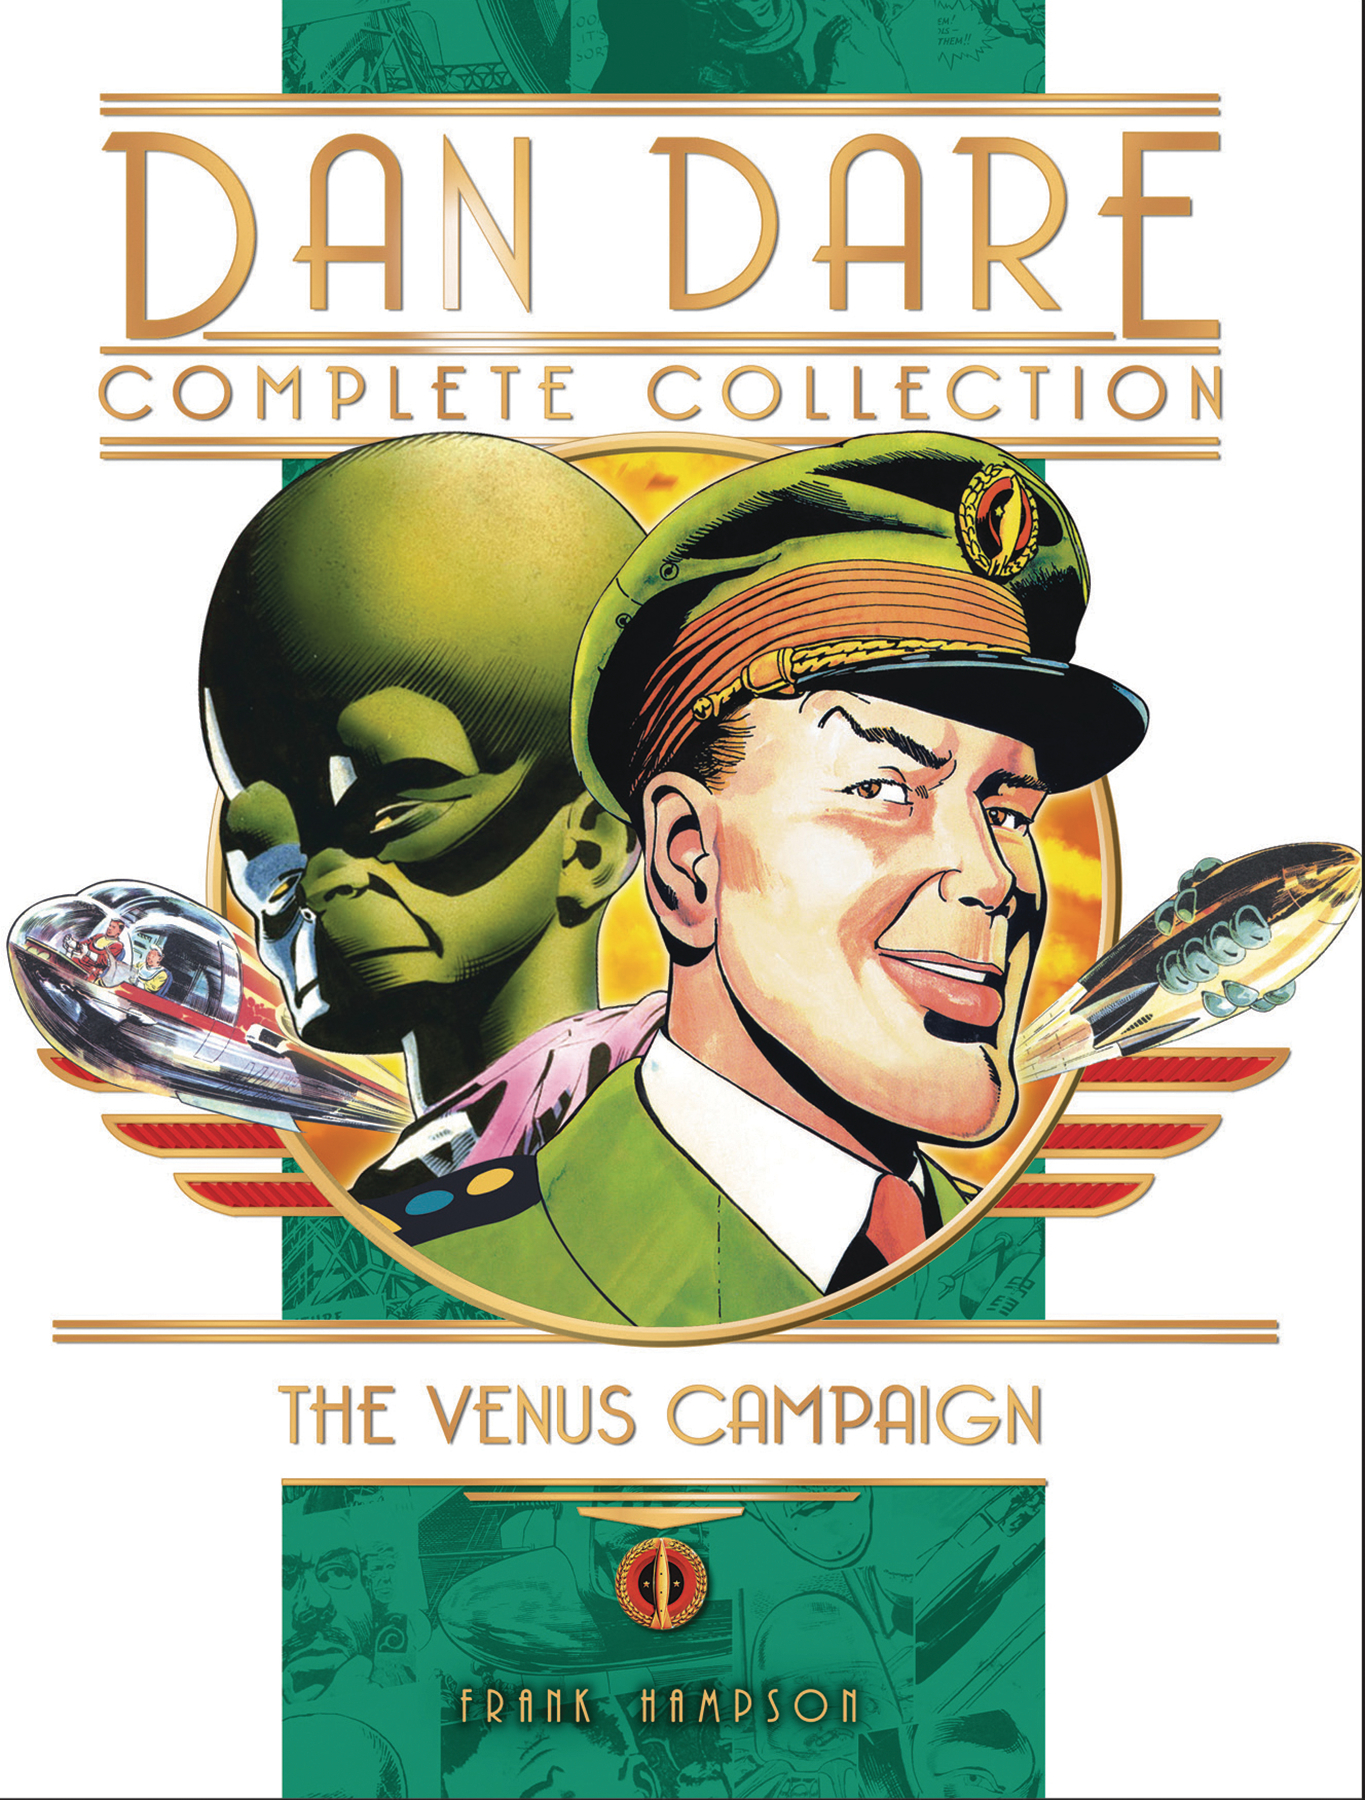 DAN DARE COMPLETE COLLECTION HC VOL 01 VENUS CAMPAIGN